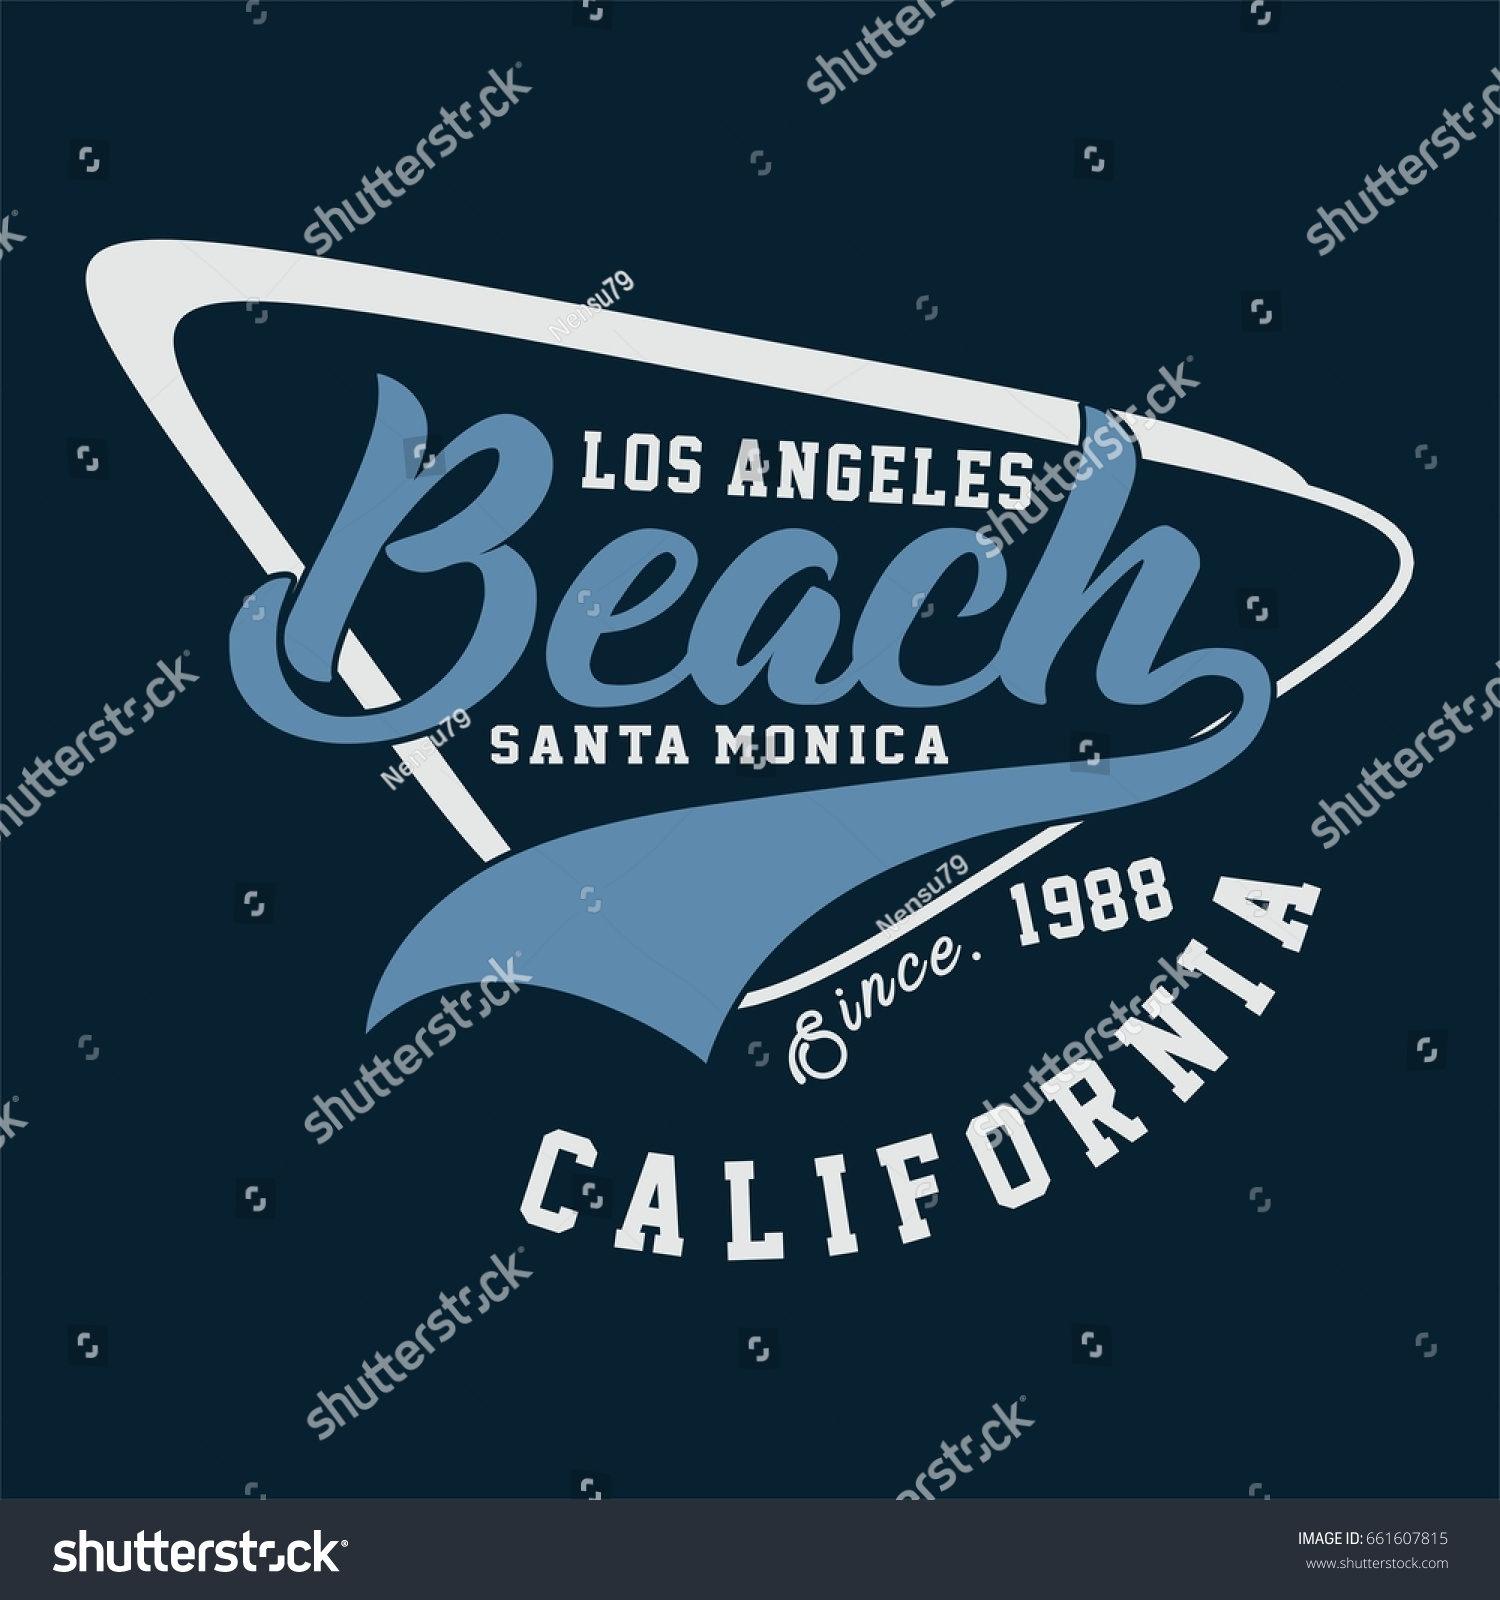 Design t shirts los angeles - Design Alphabet And Numbers Los Angeles Beach California For T Shirts